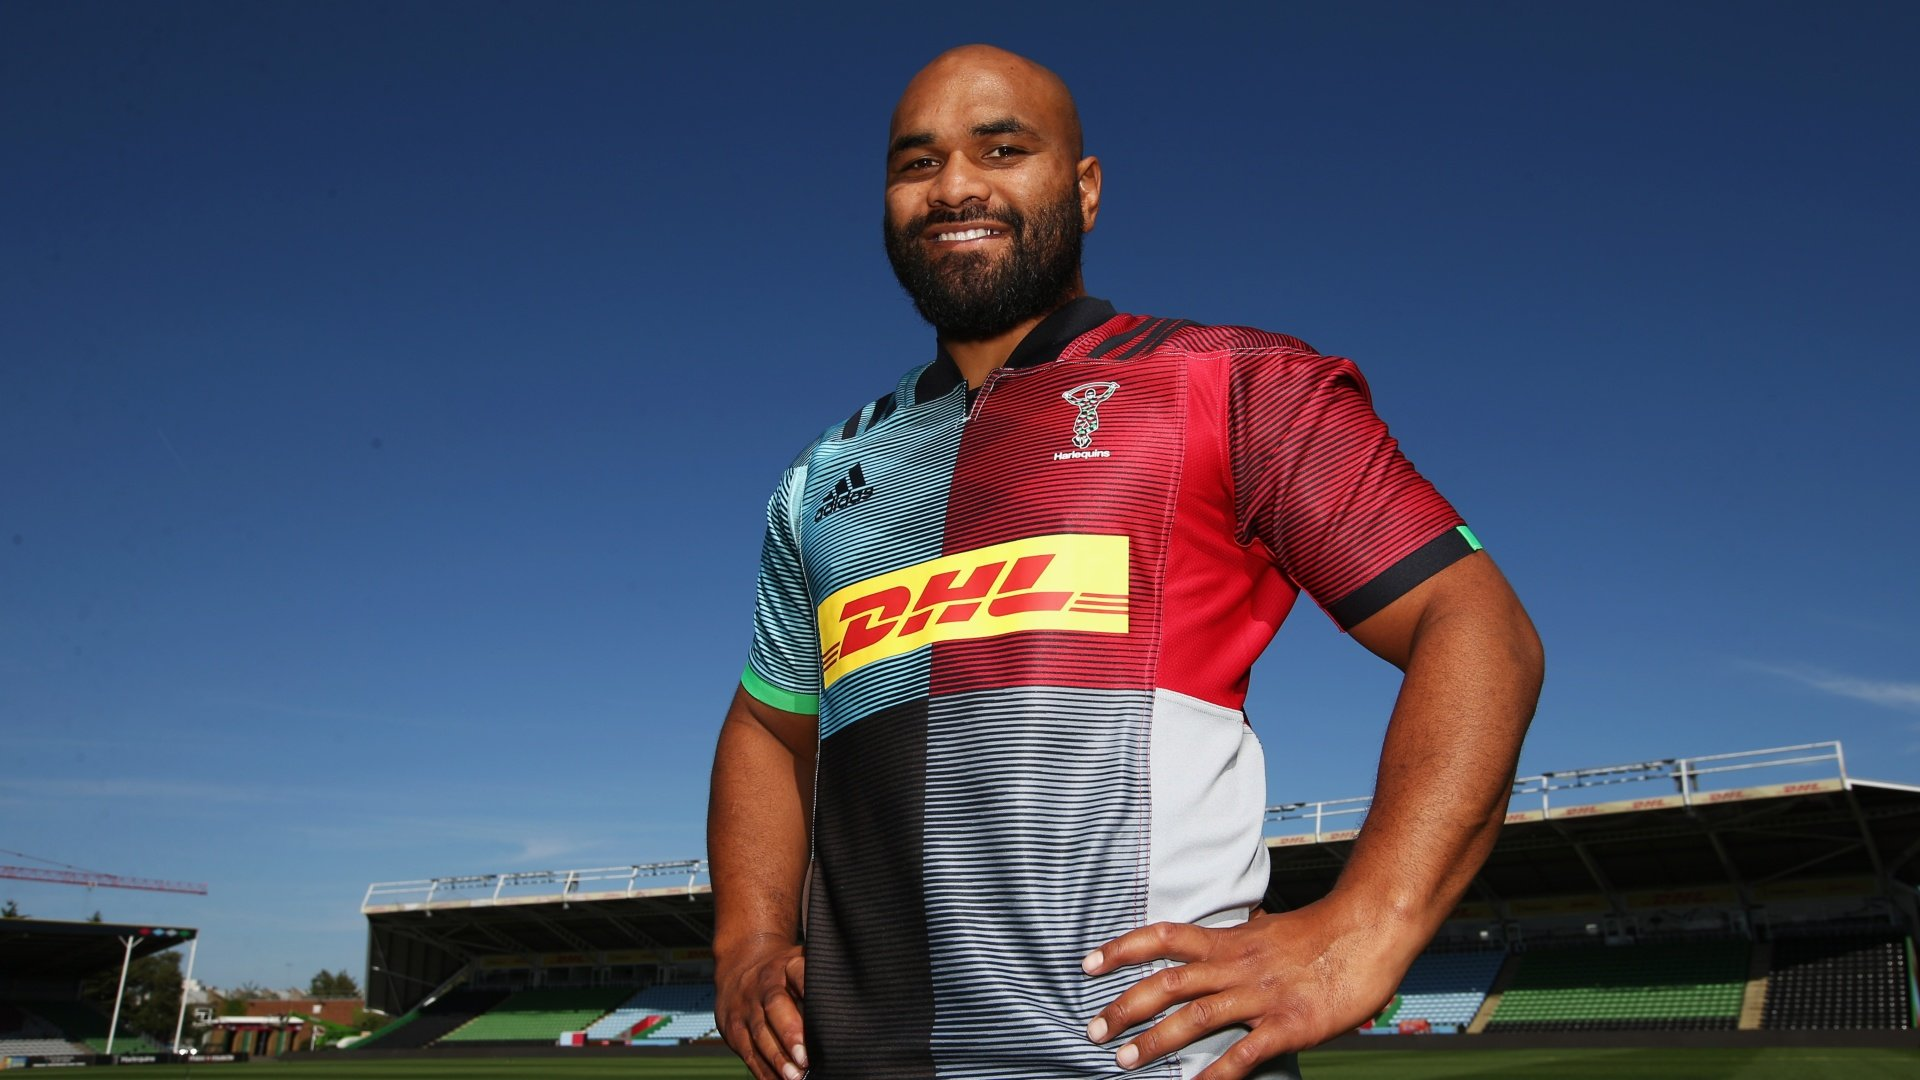 Gustard hails 'game changing' Lasike signing as 113kg former NFL player joins Quins